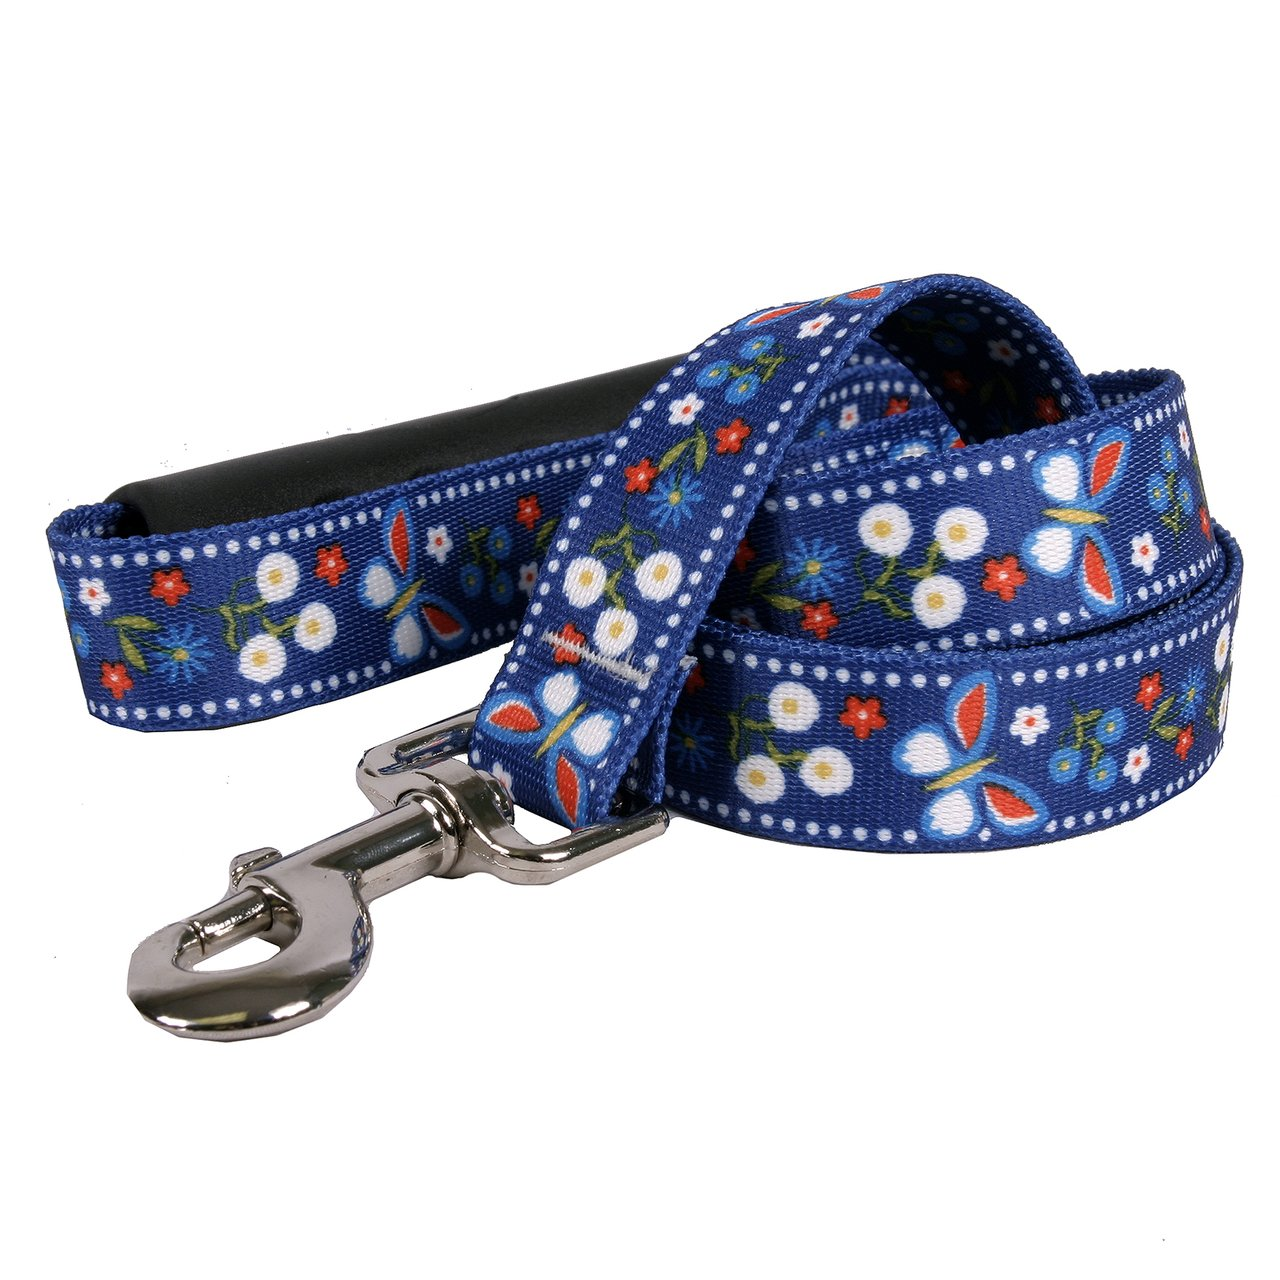 Yellow Dog Design Festive Butterfly Blue EZ-Grip Dog Leash with Comfort Handle 1'' Wide and 5' (60''), Large